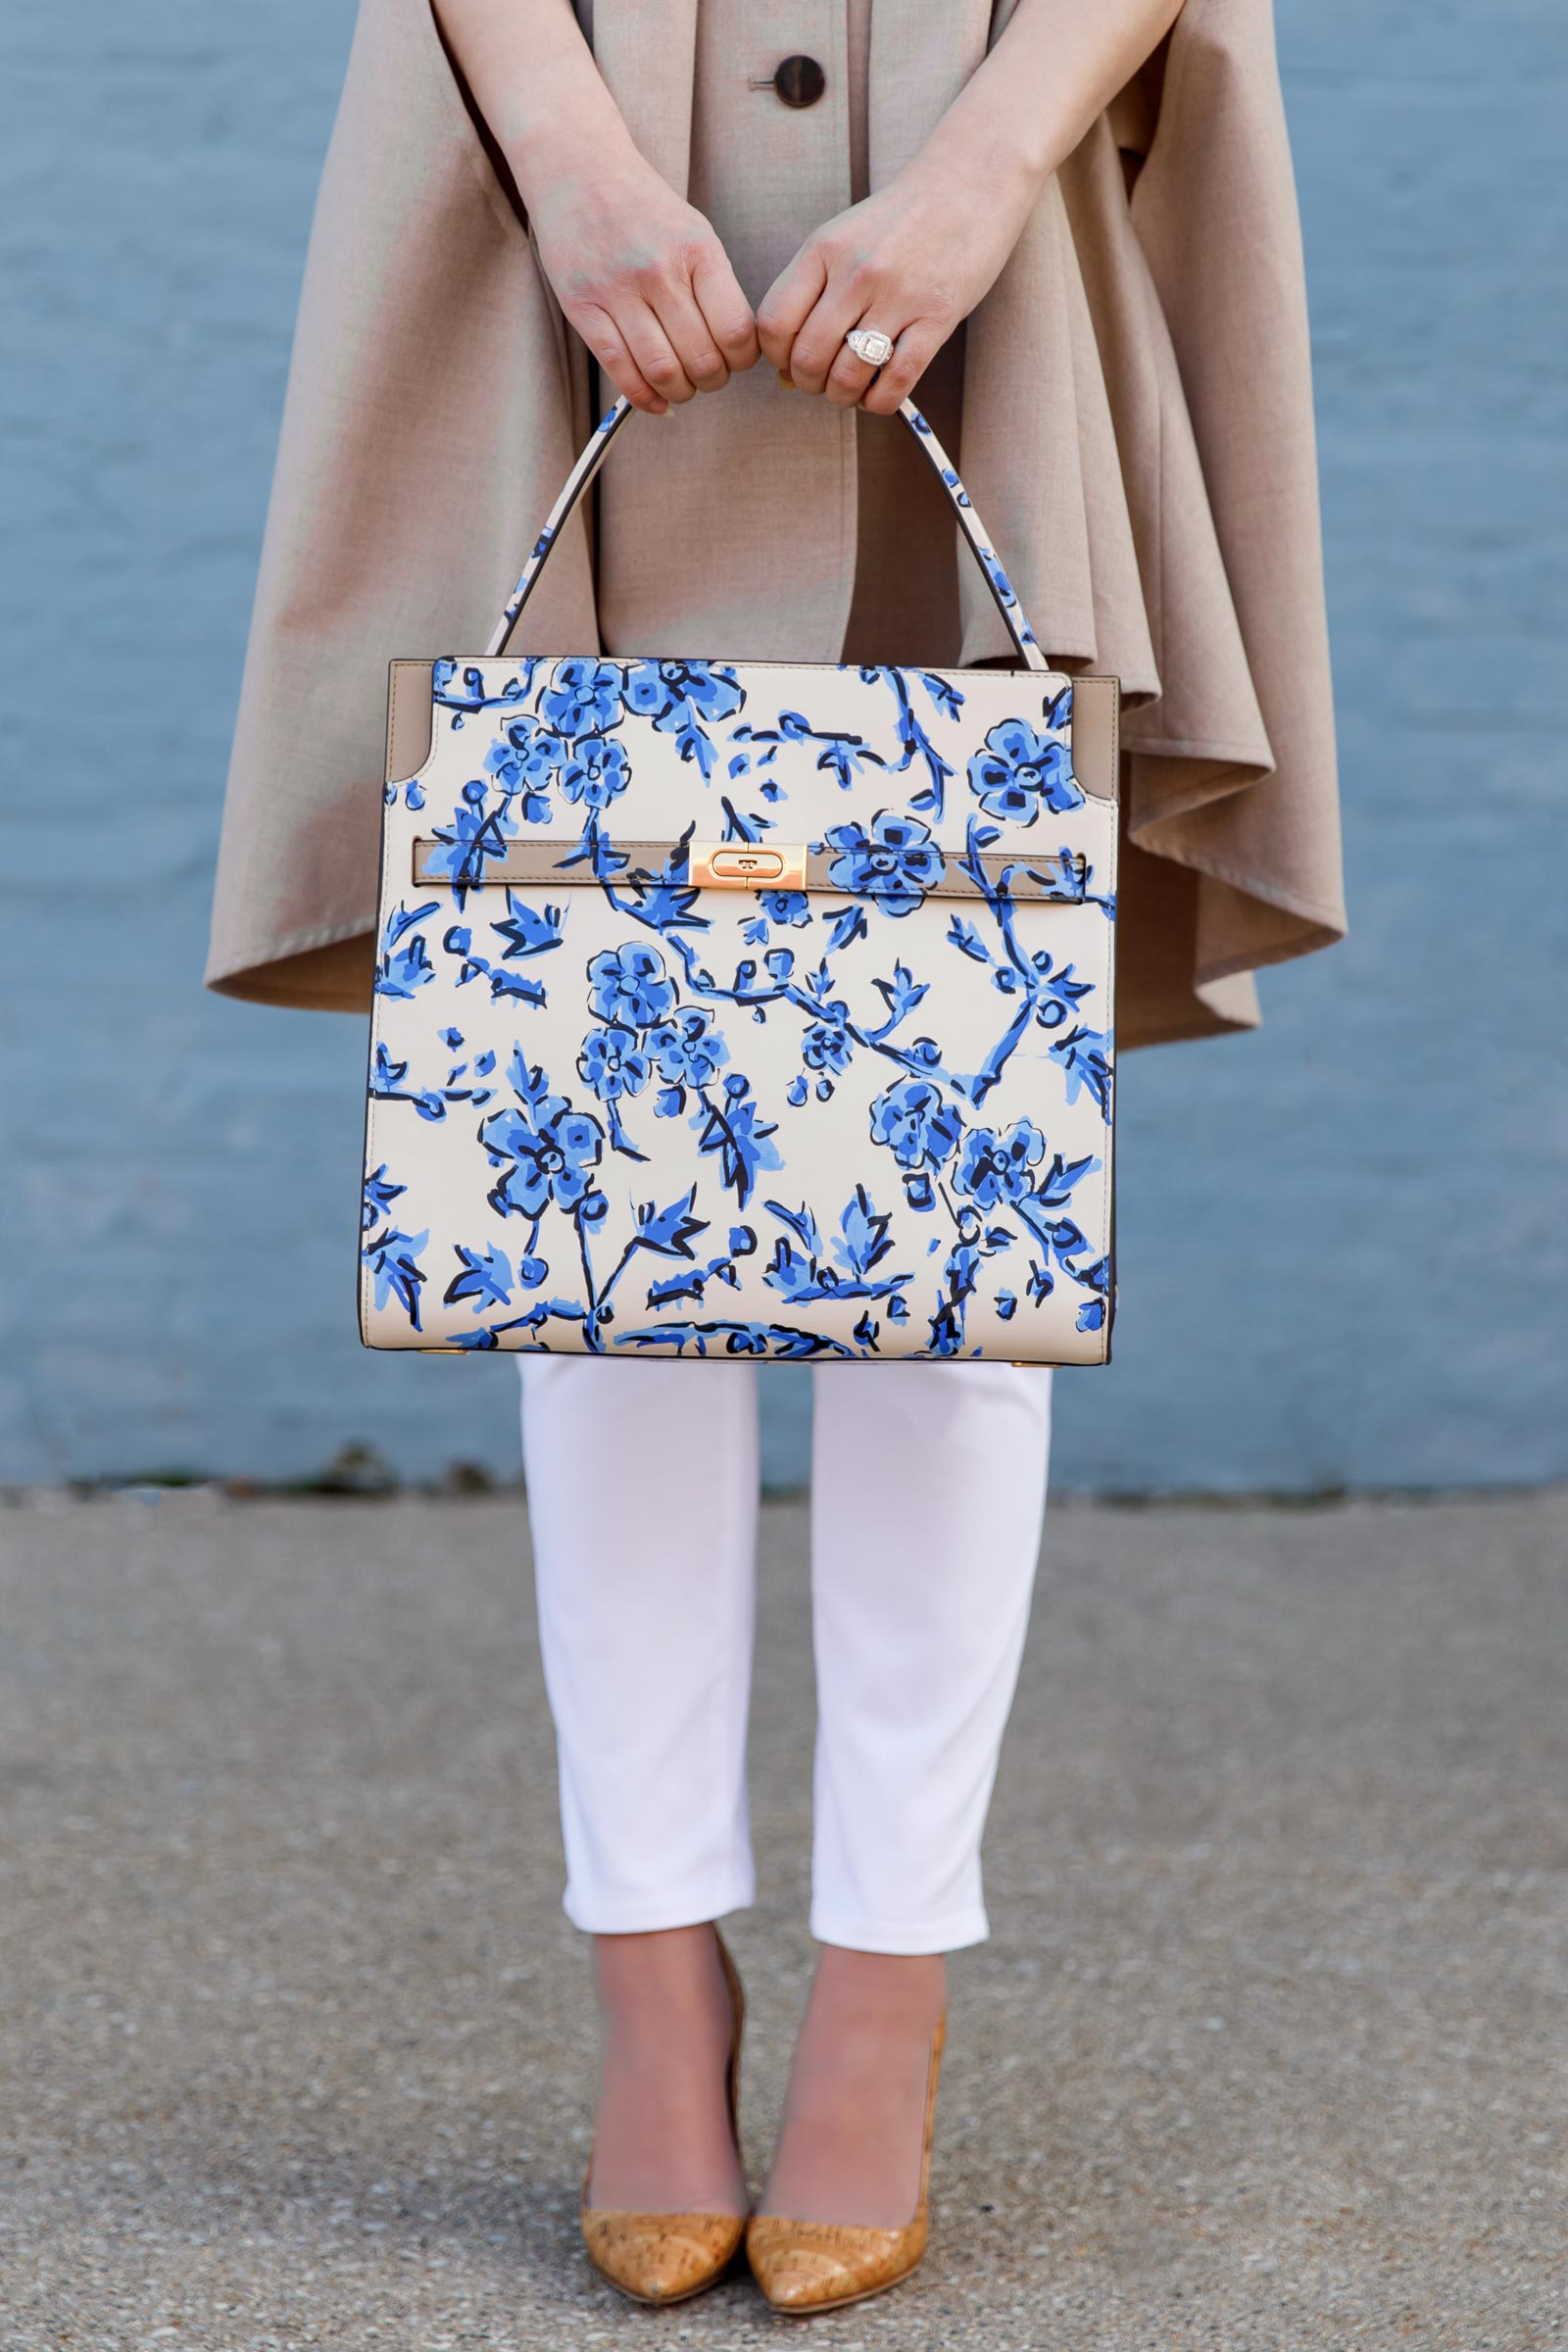 Jennifer Lake Tory Burch Blue Floral Bag